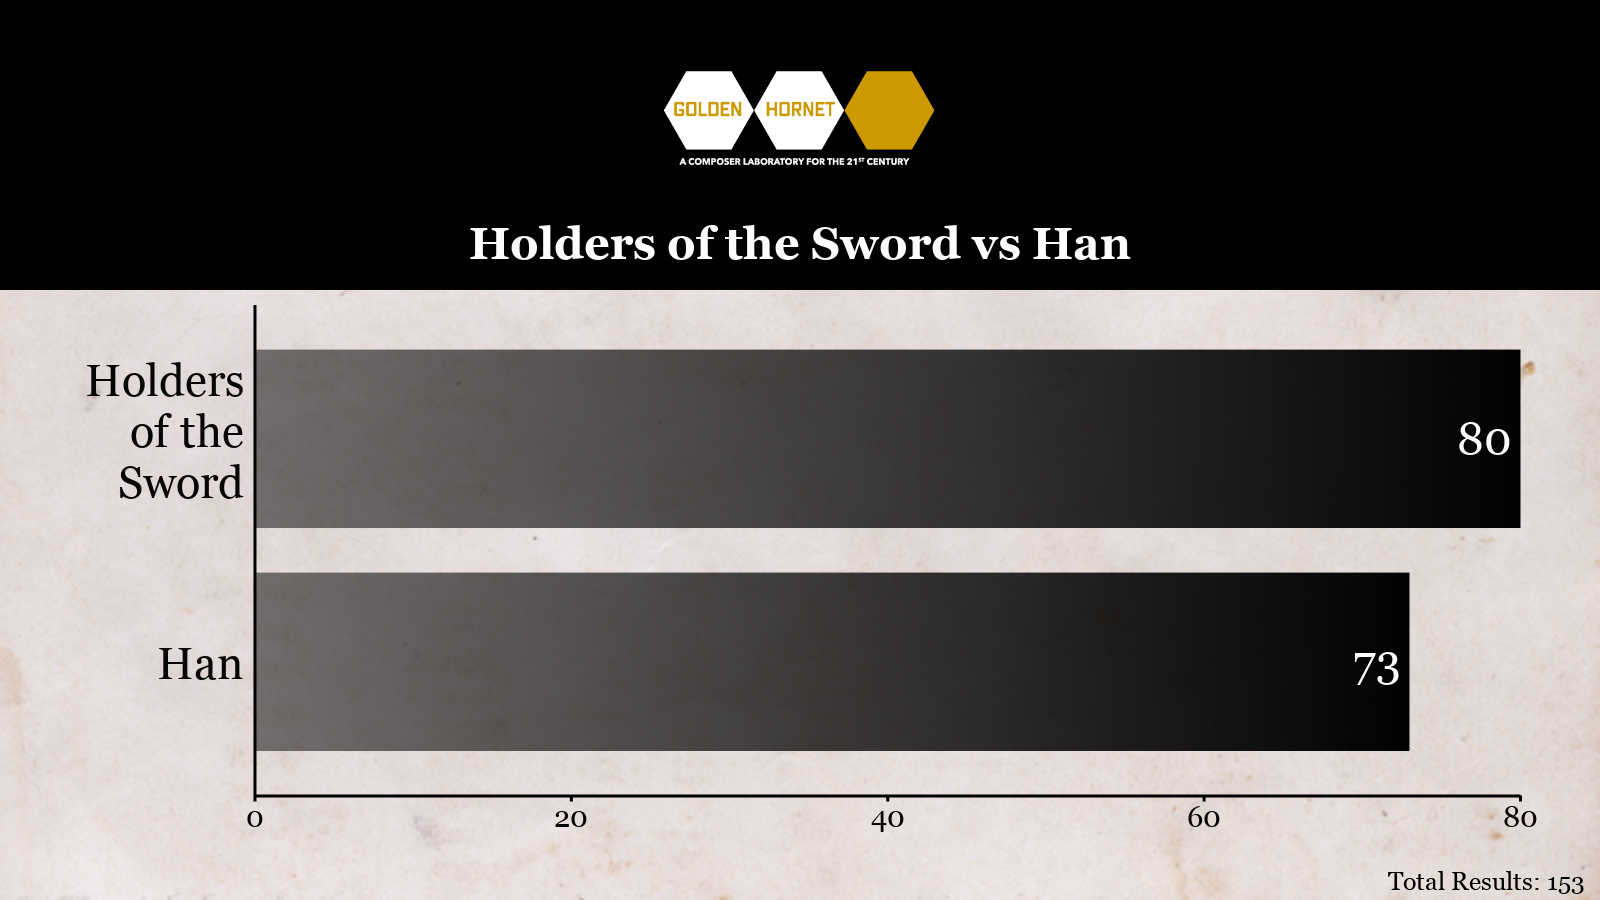 1-holders-of-the-sword-vs-han.png